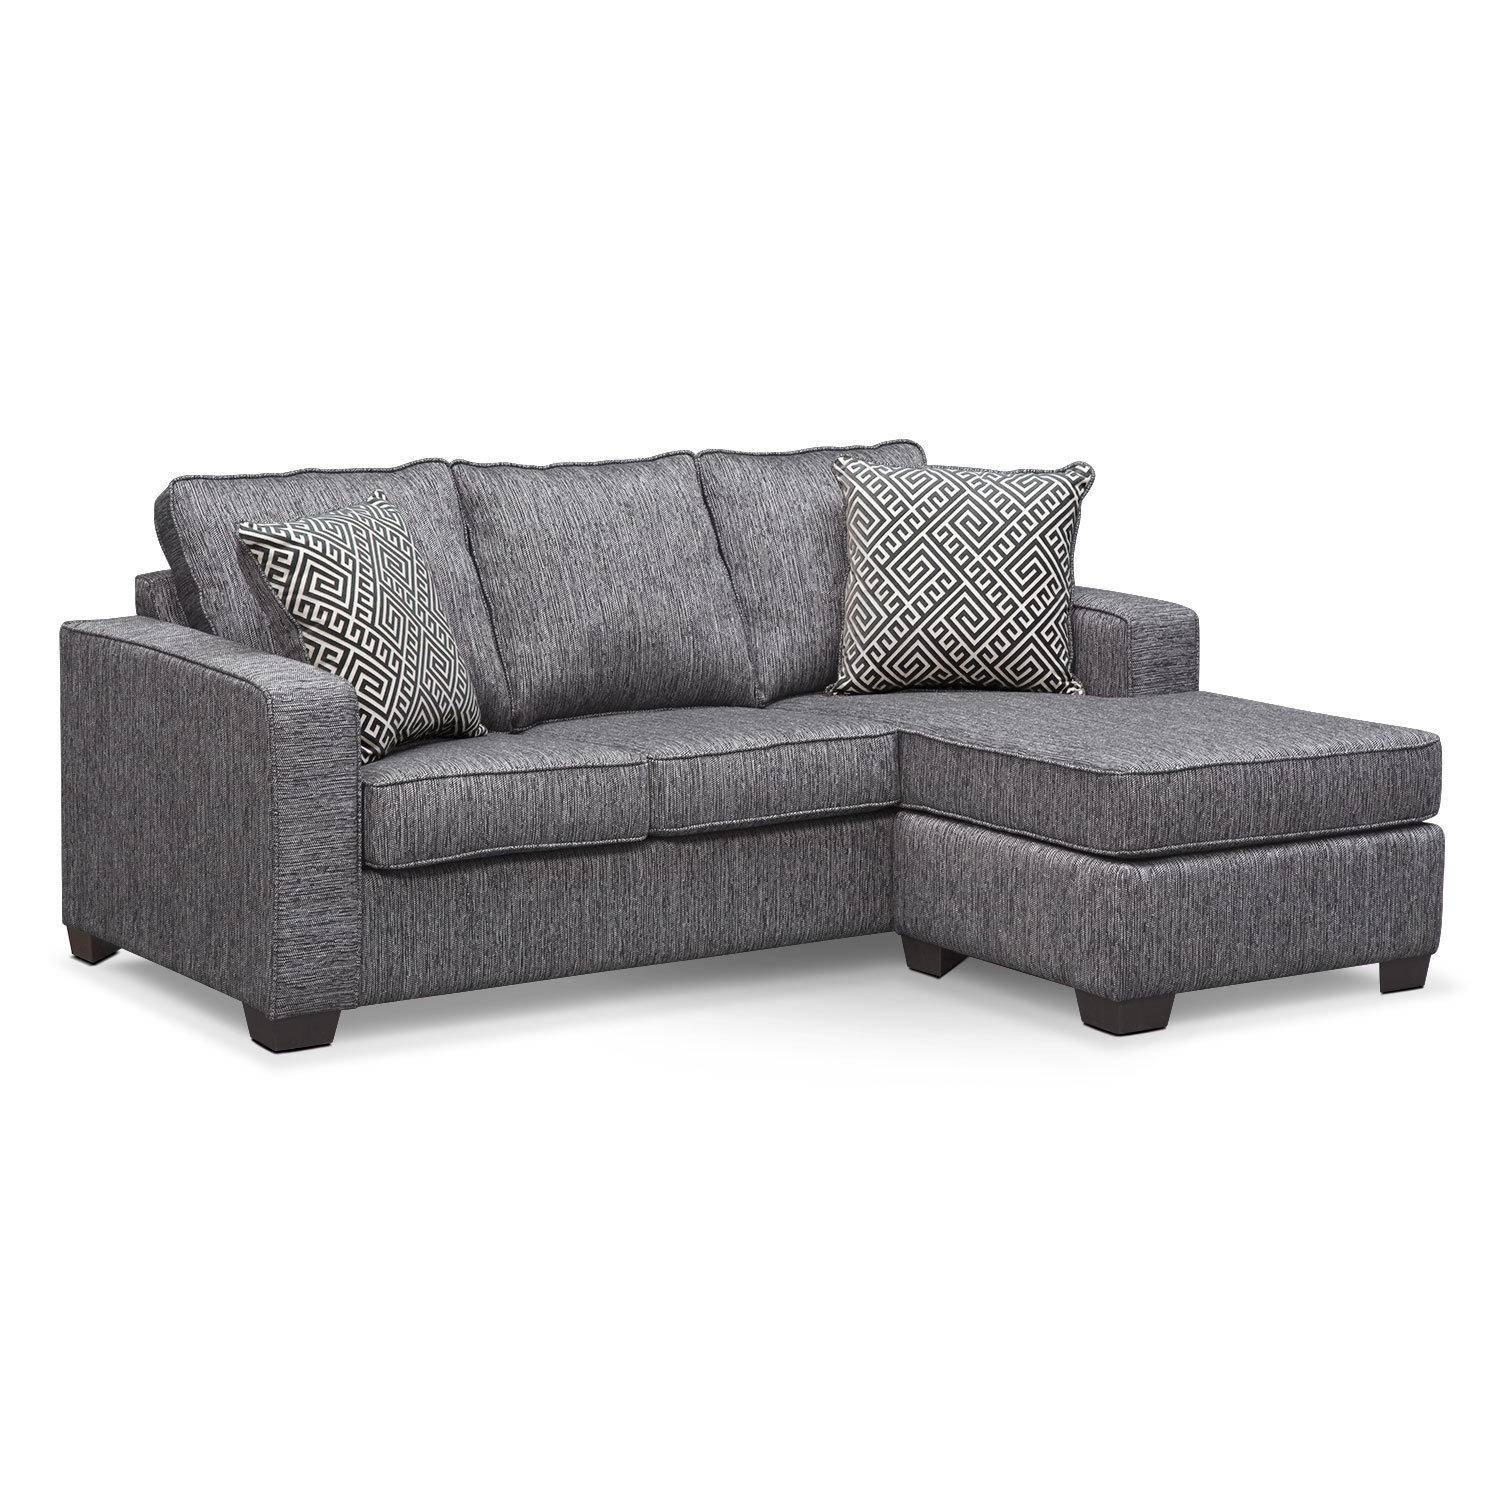 20 Collection Of Davis Sleeper Sofas | Sofa Ideas pertaining to Davis Sleeper Sofas (Image 5 of 15)